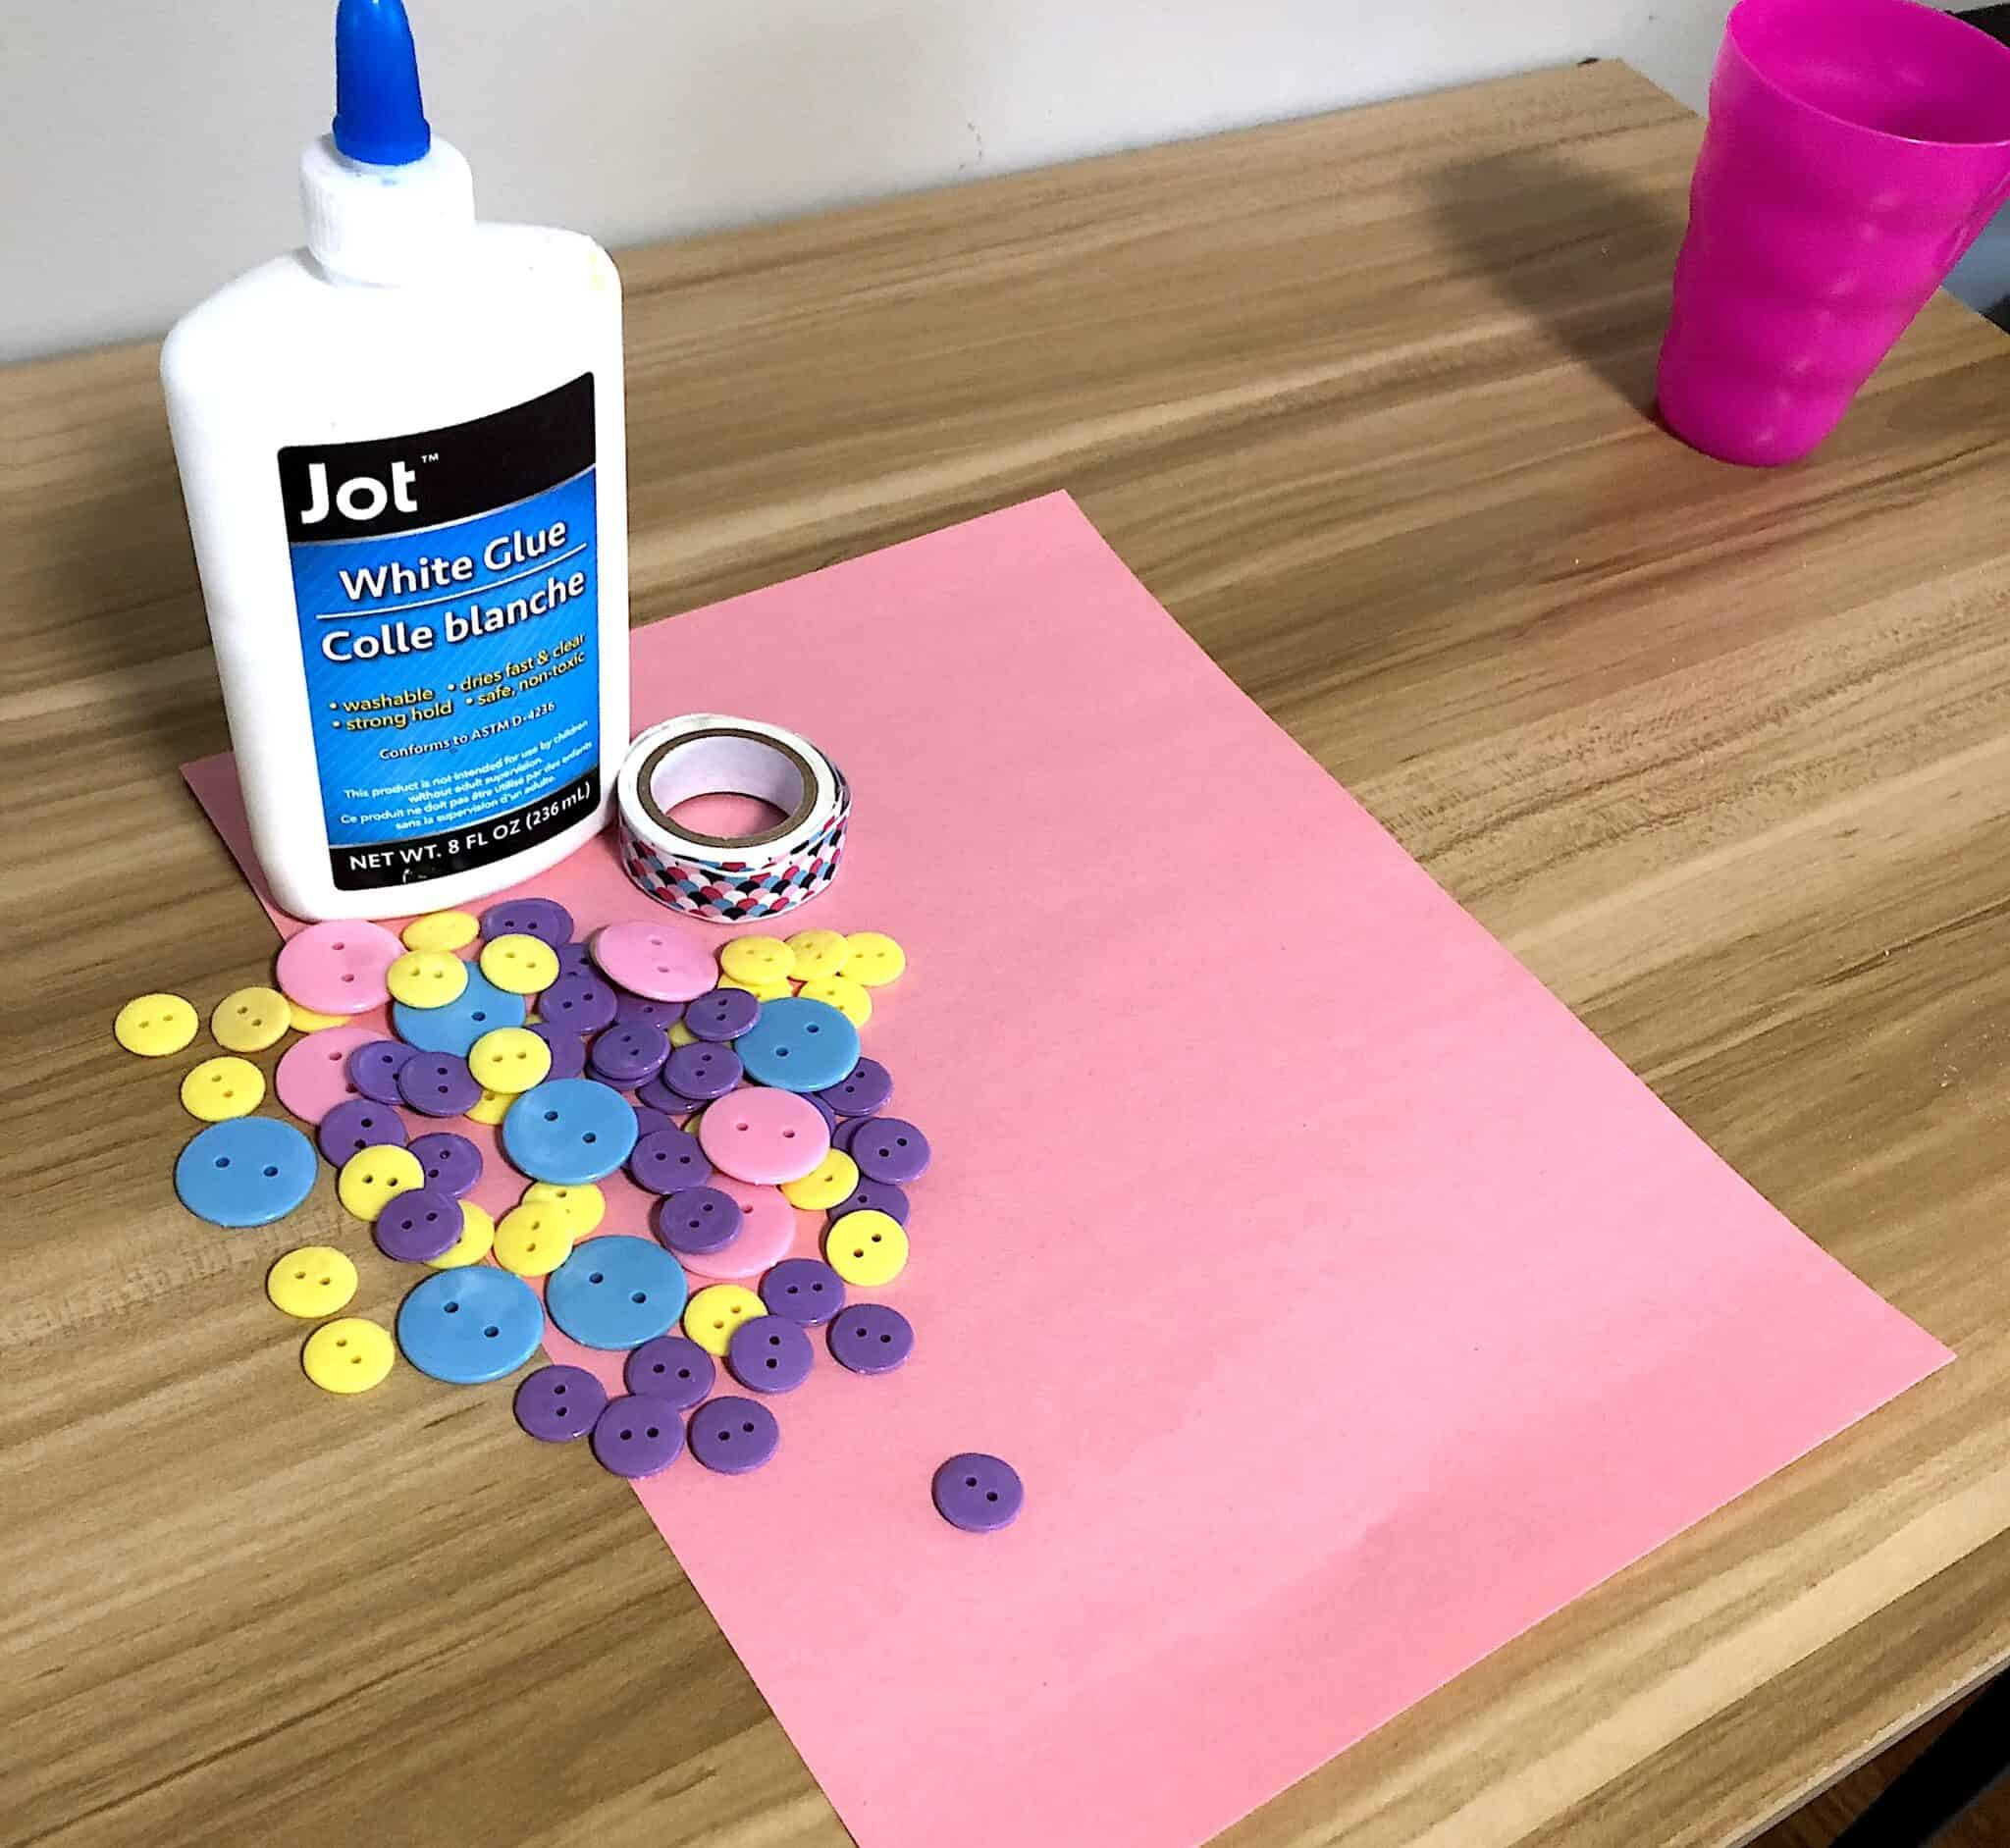 Looking for Sensory Activities That Toddlers Will Love? Well Check Out This Water Bead Sensory Bin Activity That Will Keep Your Child Occupied and Learning! #buttoncraftsforkids #buttoncrafts